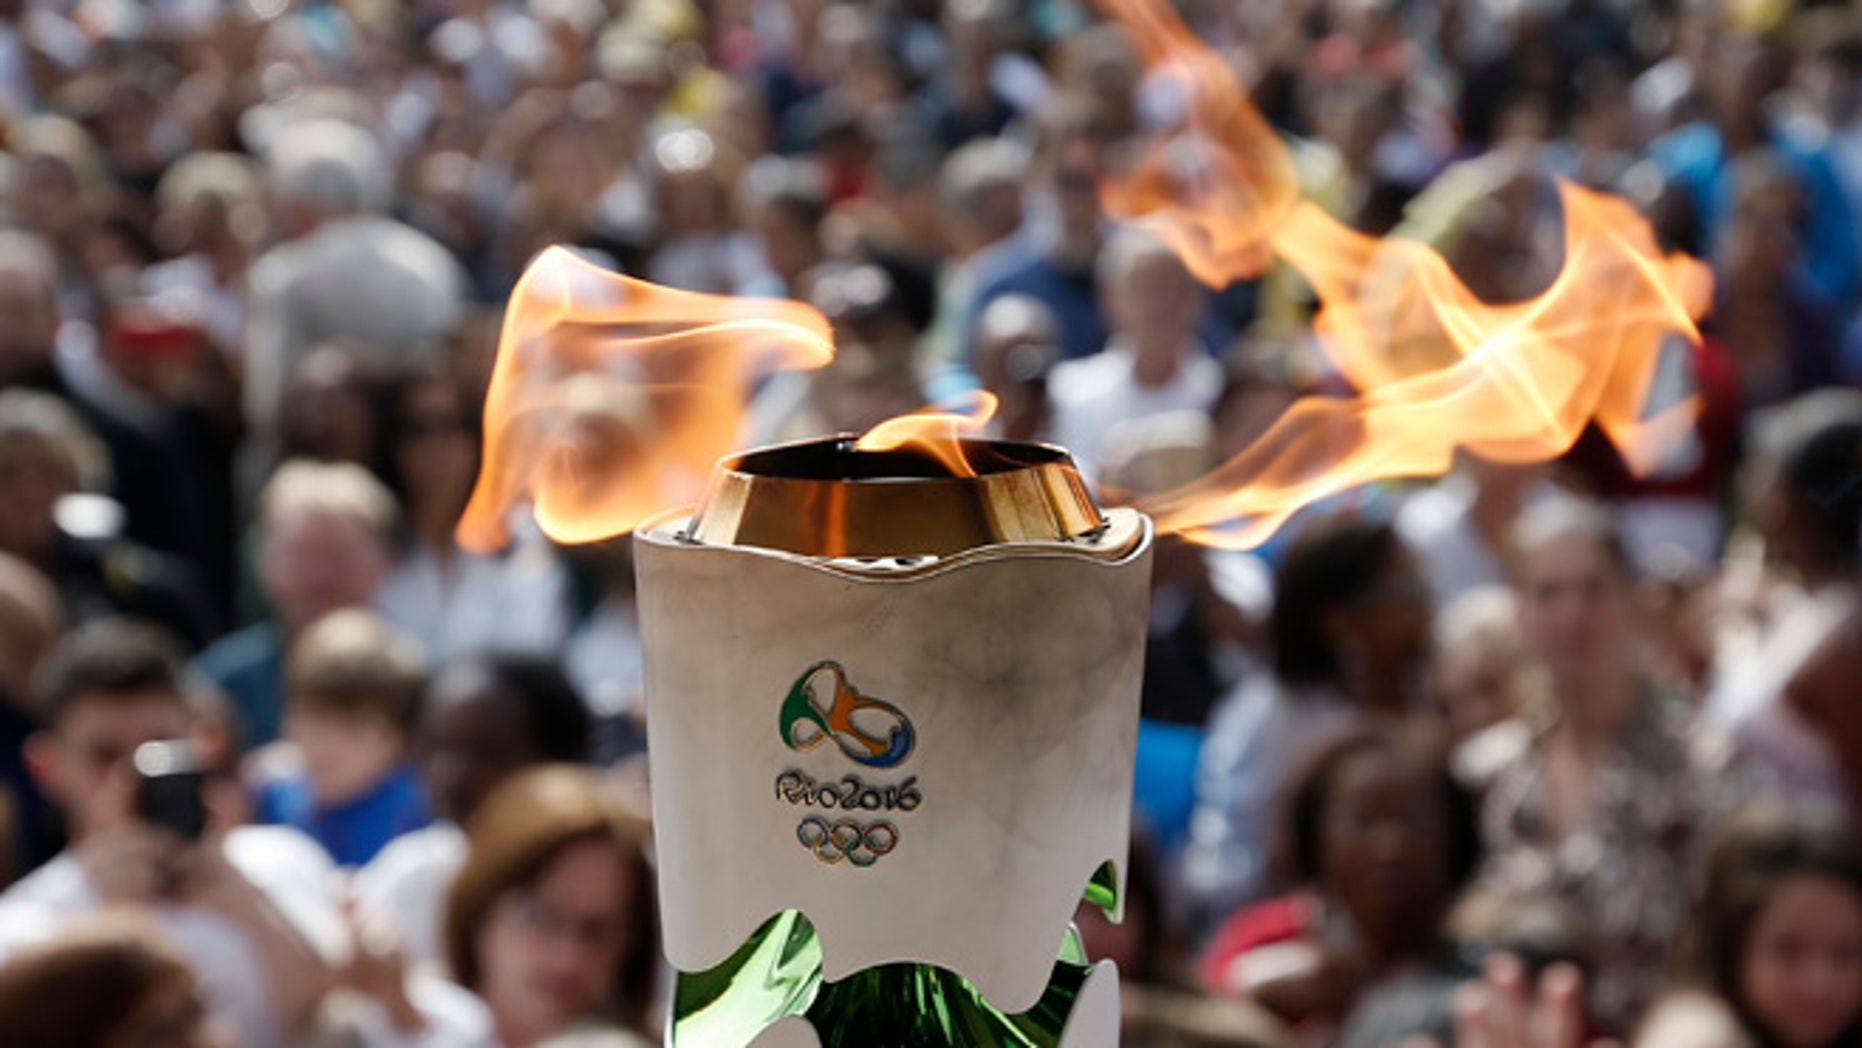 LEOPOLDINA, BRAZIL - MAY 16: Detail shot of Olympic Torch during day 14 of the Olympic Flame torch relay on May 16 , 2016 in Leopoldina, Brazil. The Olympic torch will pass through 329 cities from all states from the north to the south of Brazil, until arriving in Rio de Janeiro on August 5, to lit the cauldron.